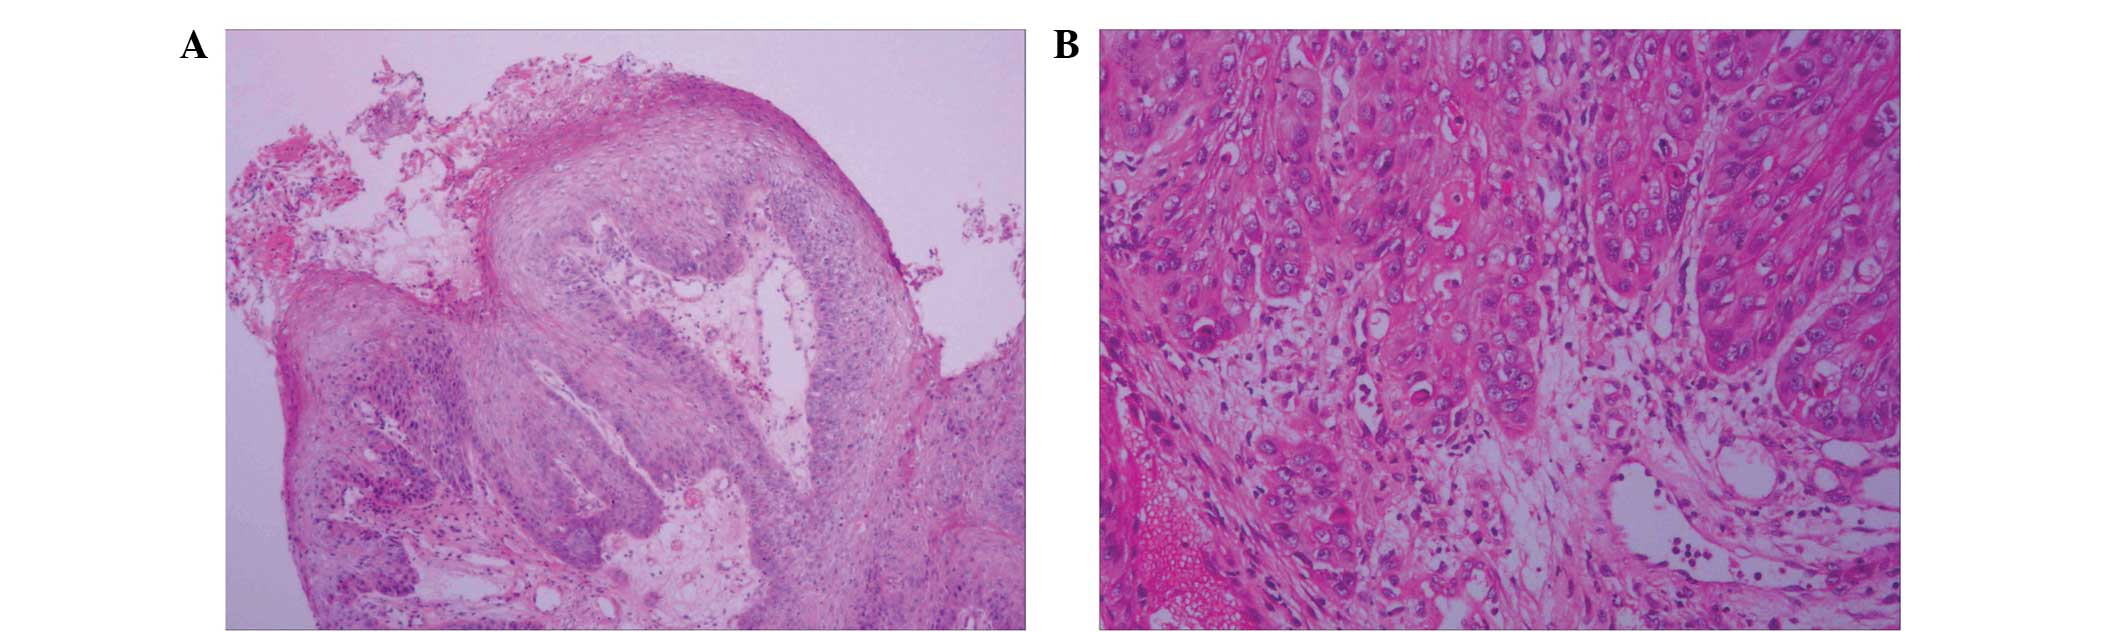 papilloma and squamous cell carcinomas hepatic cancer imaging